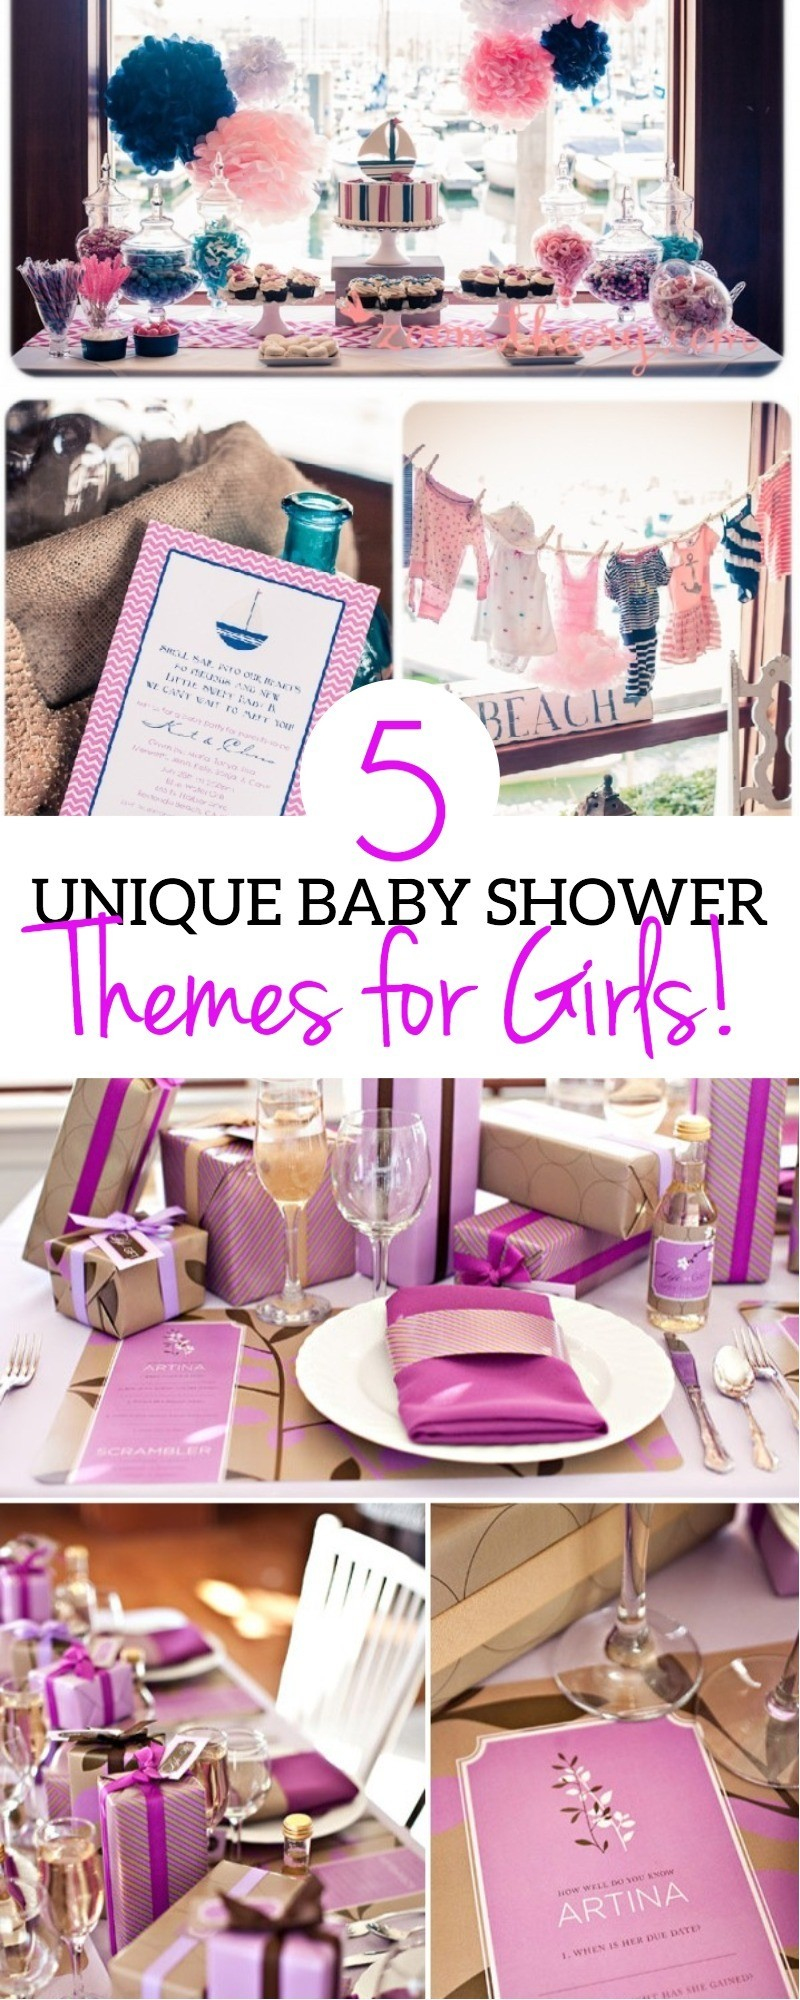 Swell 5 Unique Baby Shower Ideas For Girls We Love These Cute Download Free Architecture Designs Scobabritishbridgeorg